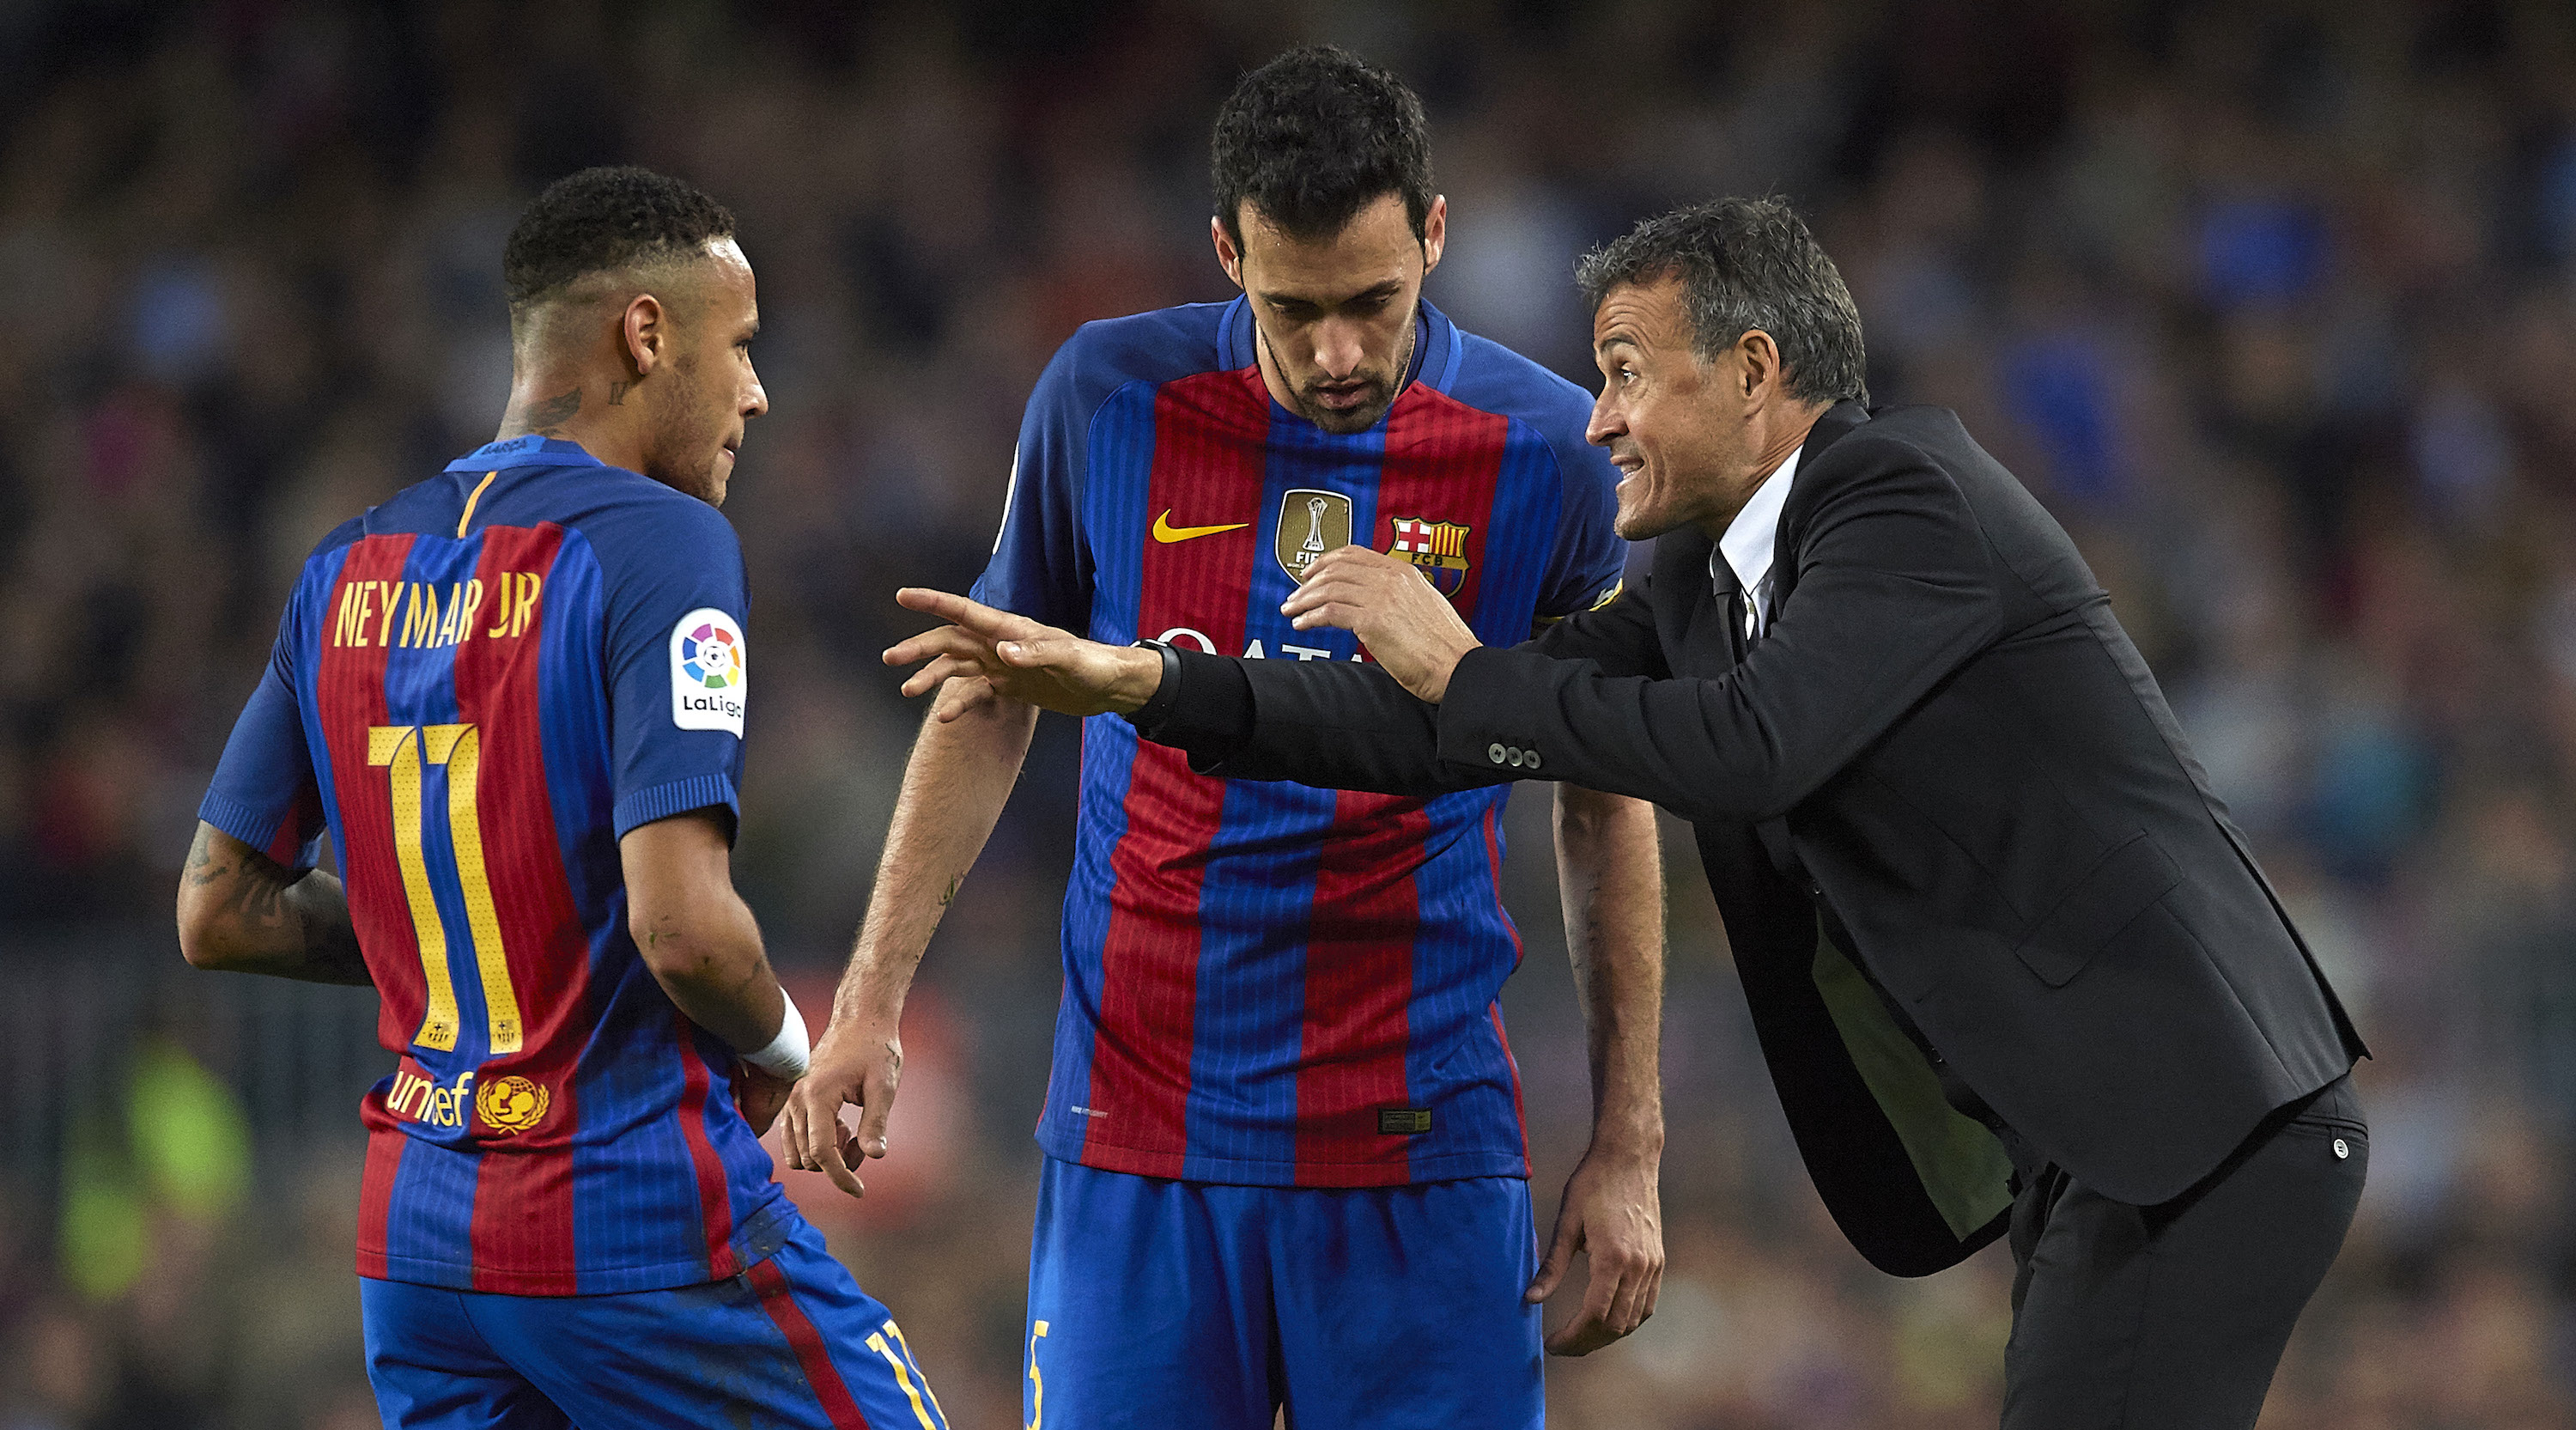 BARCELONA, SPAIN - NOVEMBER 19: Luis Enrique, Manager of FC Barcelona give instructions to his players Sergio Busquets and Neymar JR during the La Liga match between FC Barcelona and Malaga CF at Camp Nou stadium on November 19, 2016 in Barcelona, Spain. (Photo by Manuel Queimadelos Alonso/Getty Images)